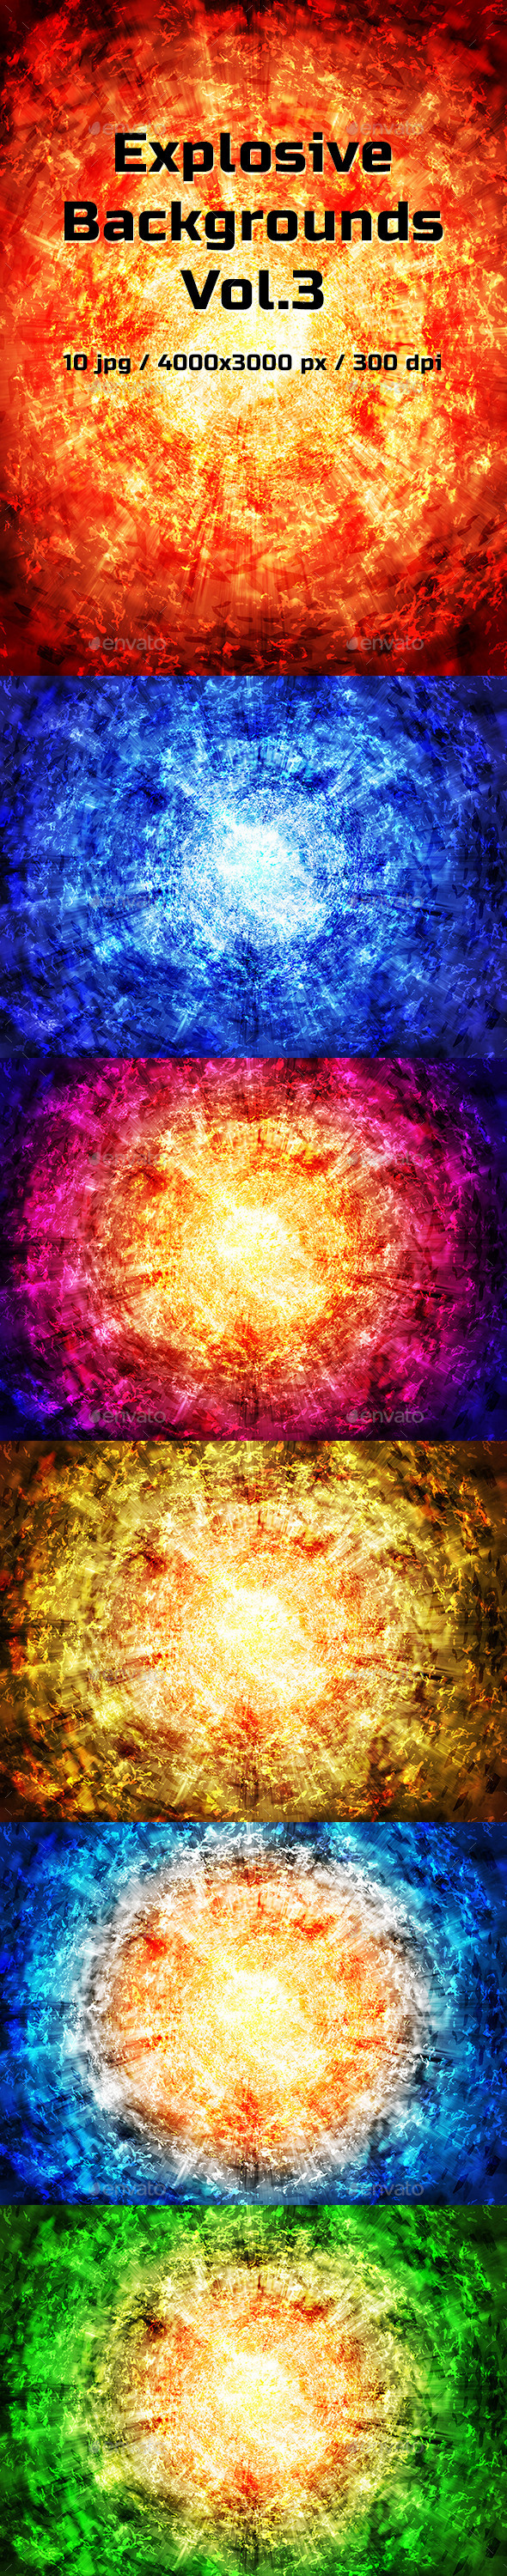 Explosive Backgrounds Vol.3 - Abstract Backgrounds